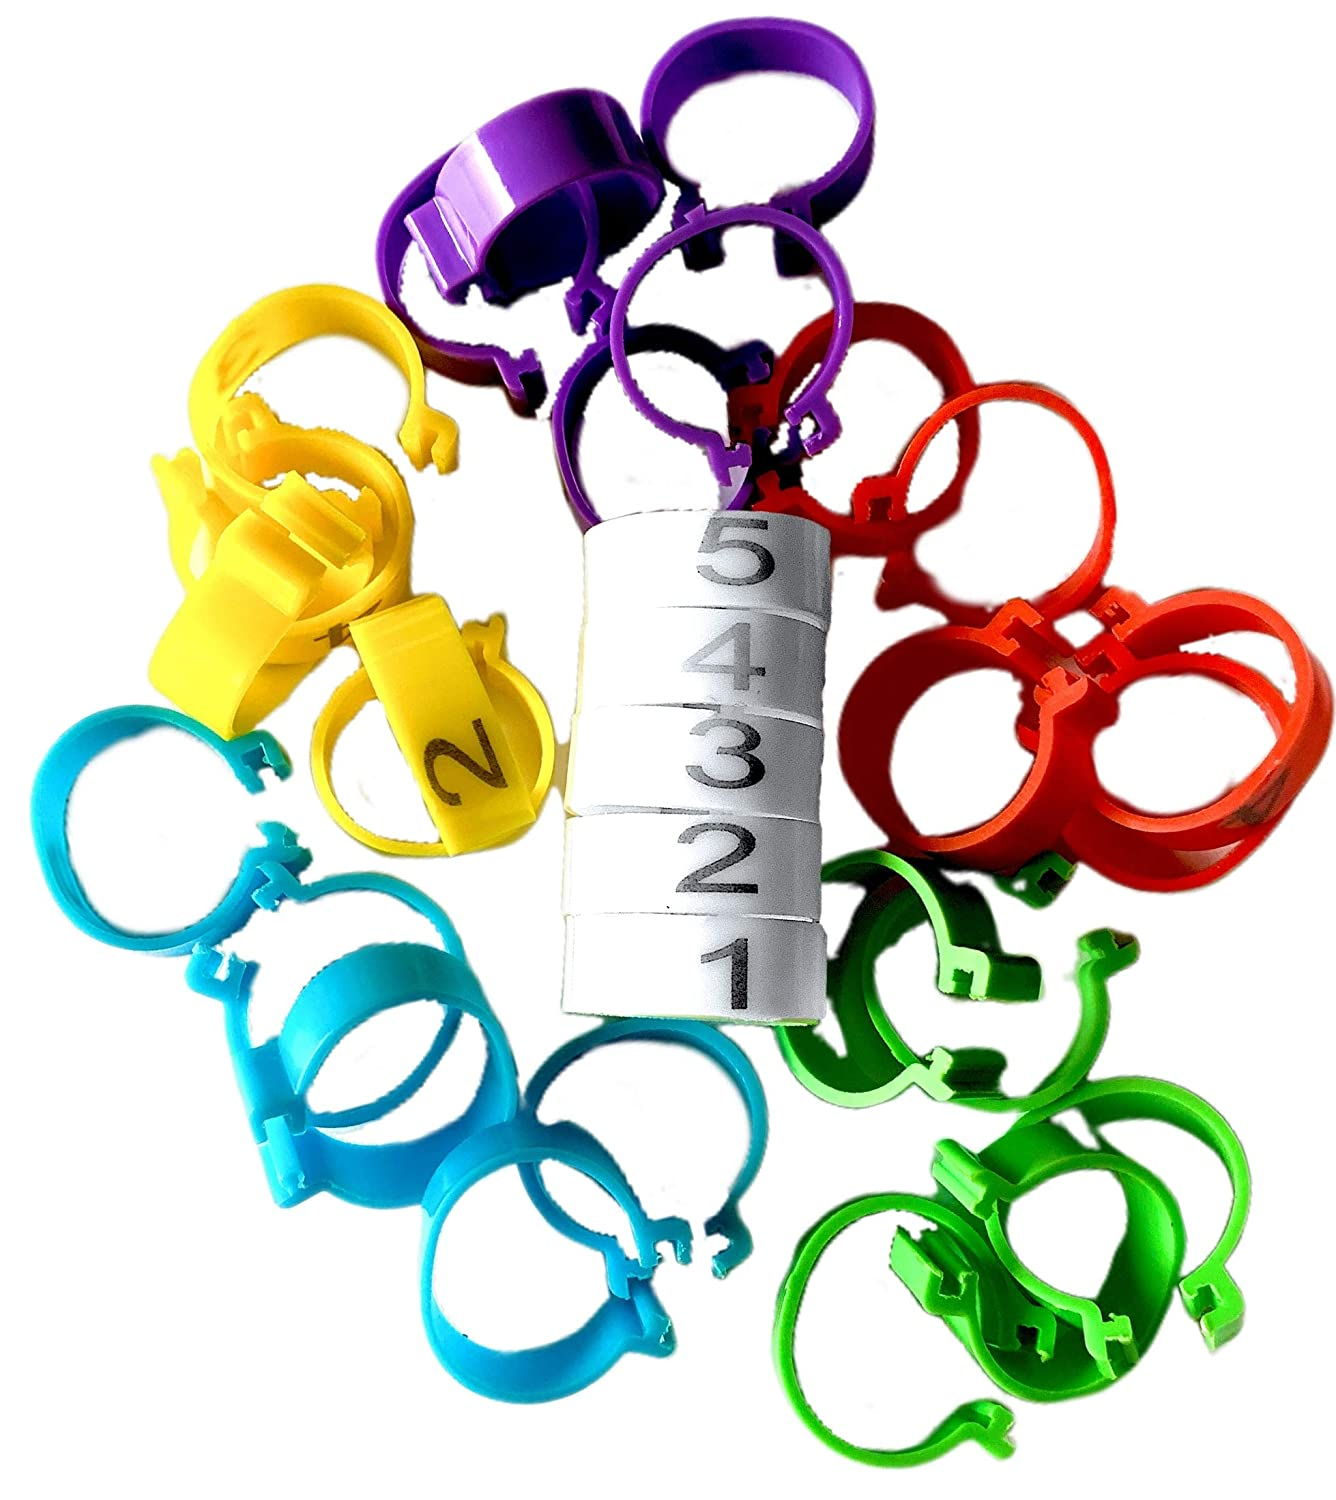 Chicken Leg Rings Duck Medium is 1//2 to 5//8 legs and Large is 5//8 to 3//4 legs Turkey Guinea Clip On Poultry Ankle Bands for Gamefowl 20 Numbered Tag Markers for 3-7lb Birds